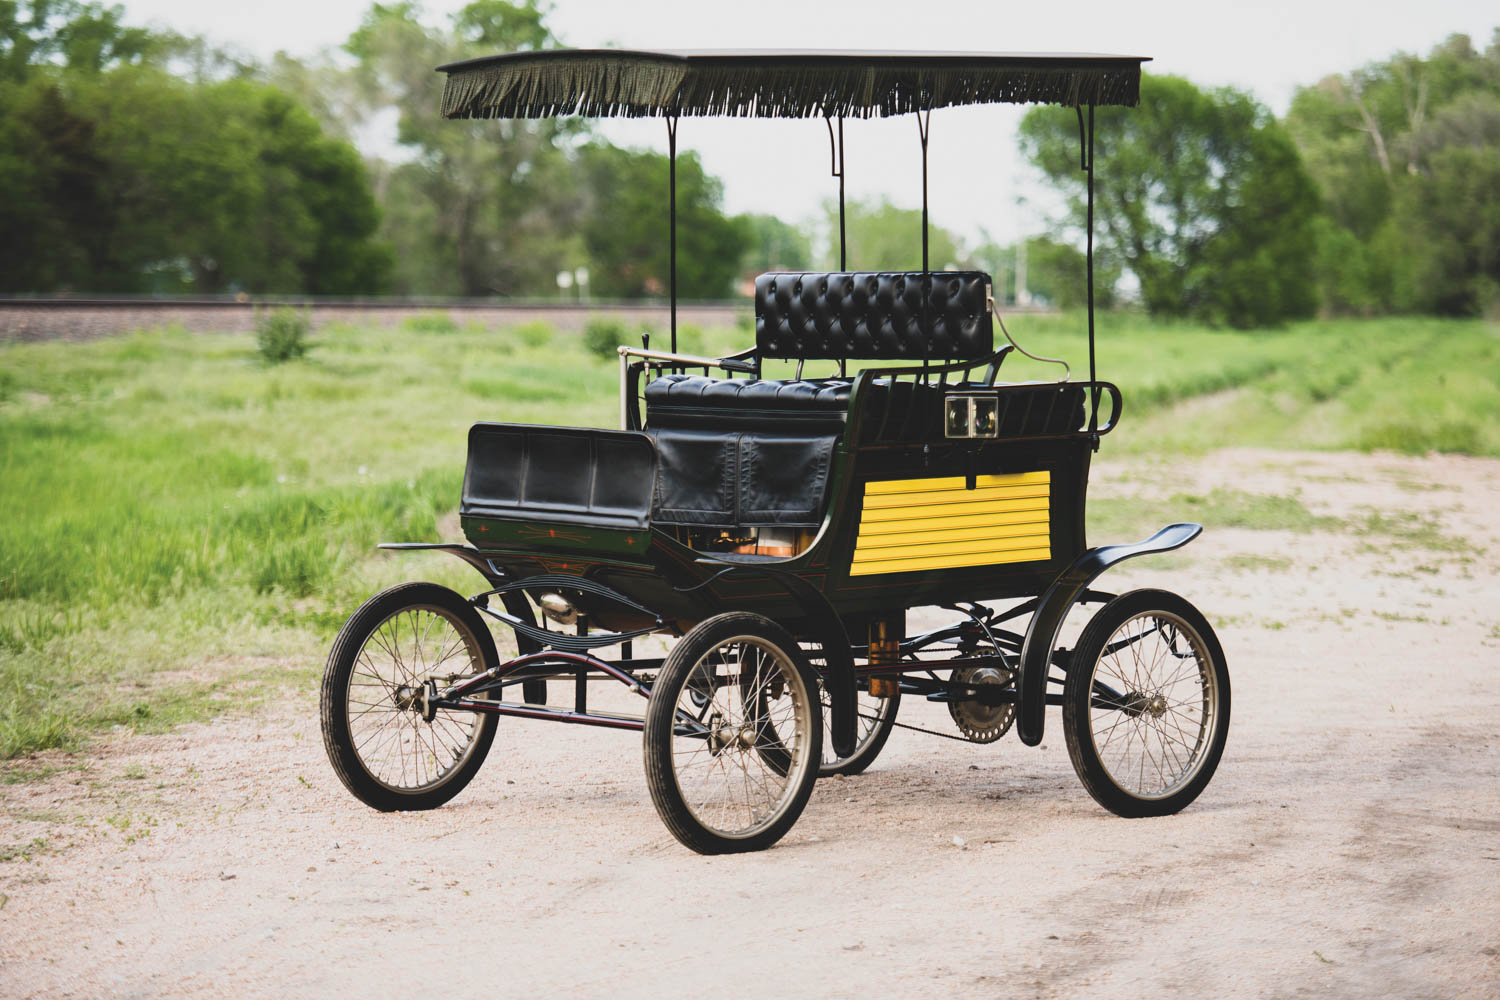 1901 Mobile Model 9 Dos-à-Dos Steam Runabout